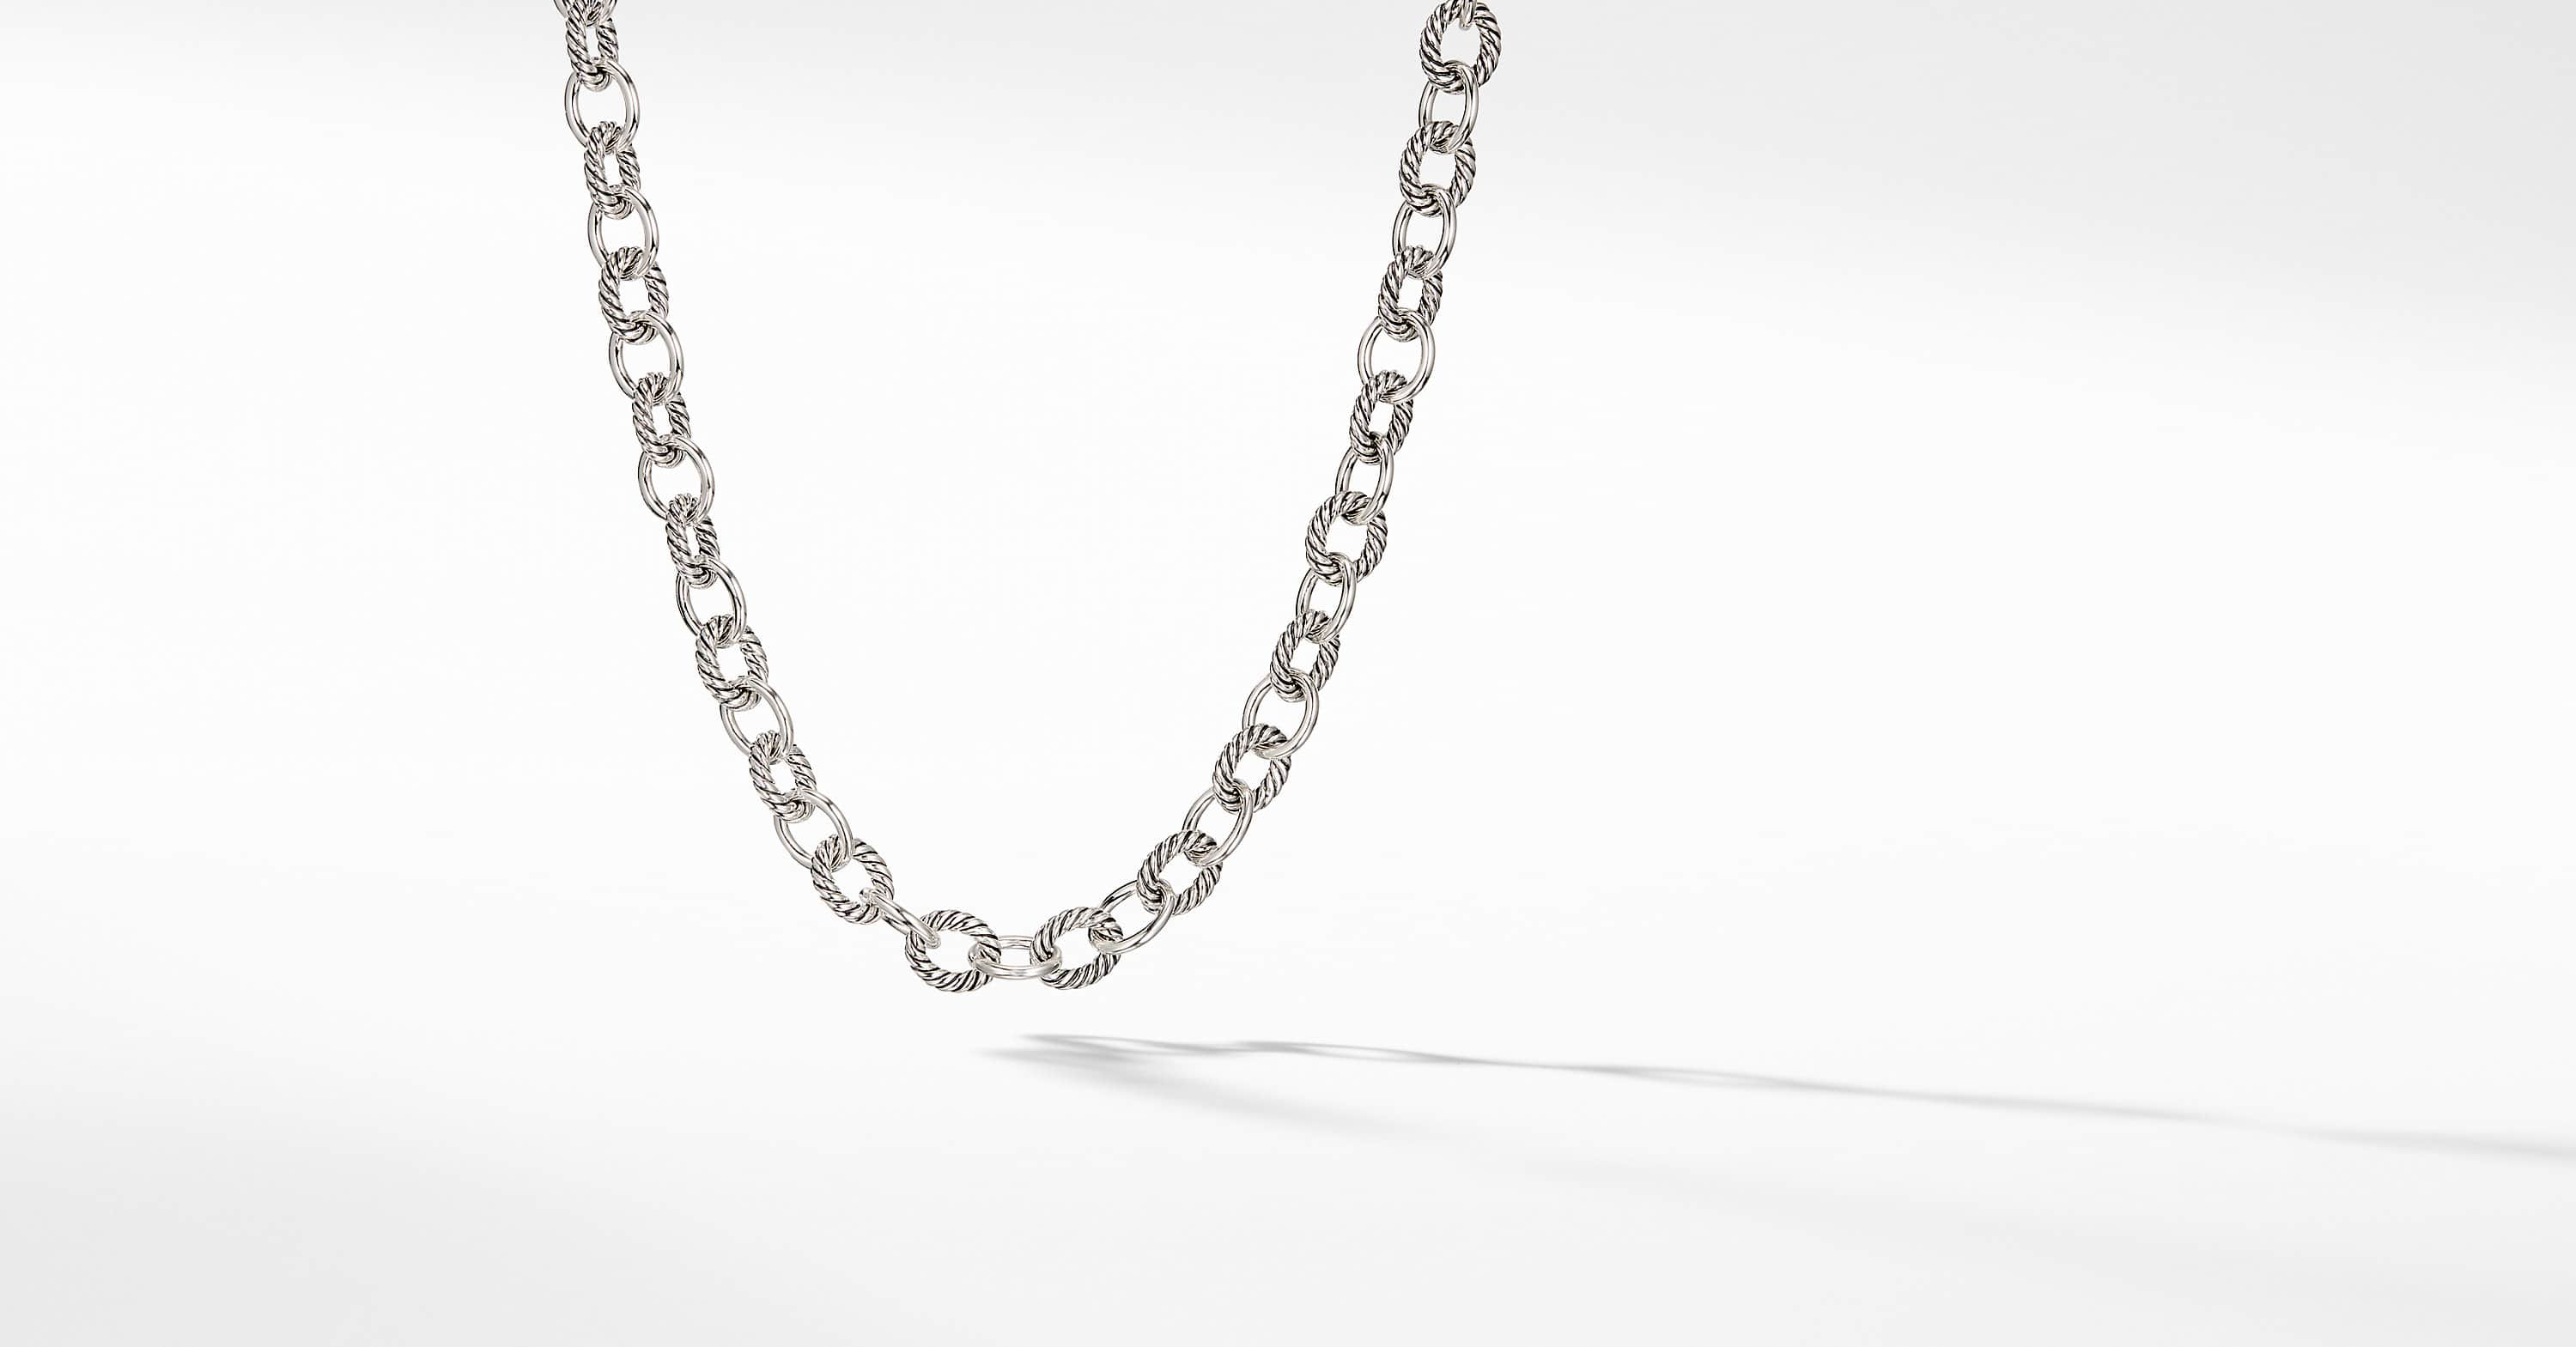 Medium Oval Link Necklace